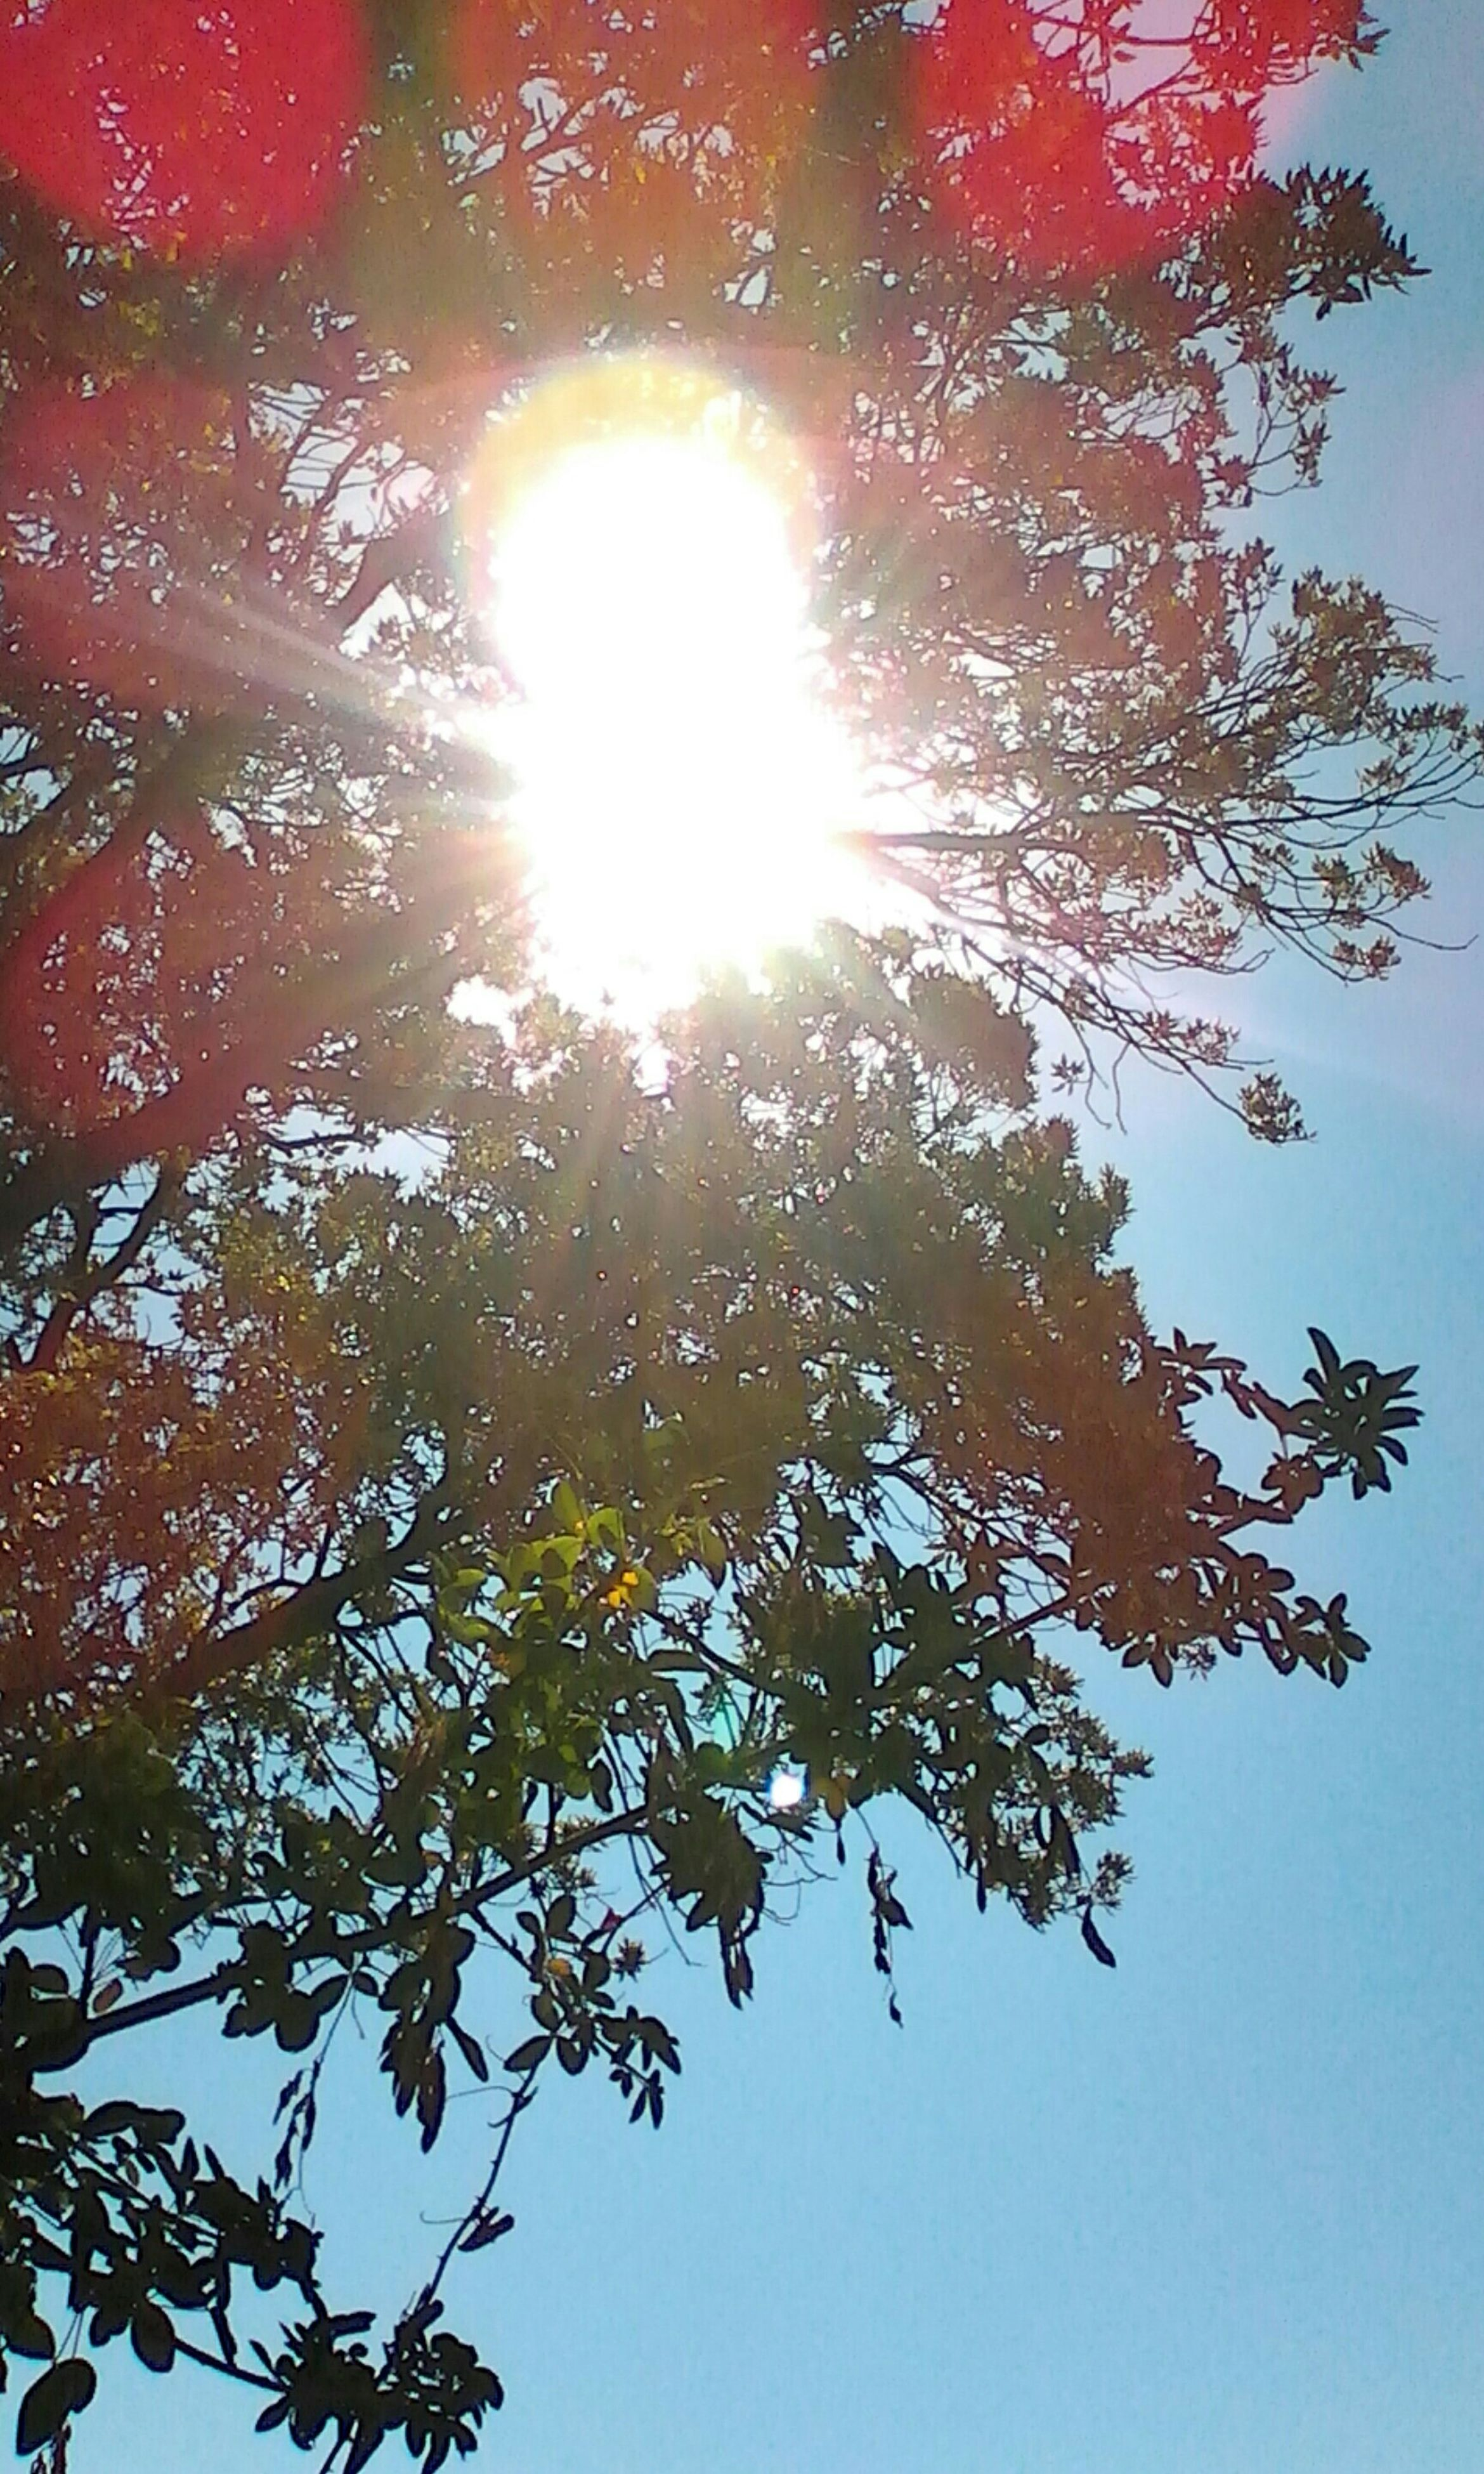 low angle view, tree, branch, sun, growth, nature, beauty in nature, sunlight, tranquility, sky, lens flare, sunbeam, day, outdoors, no people, scenics, change, bright, high section, directly below, sunny, tranquil scene, close-up